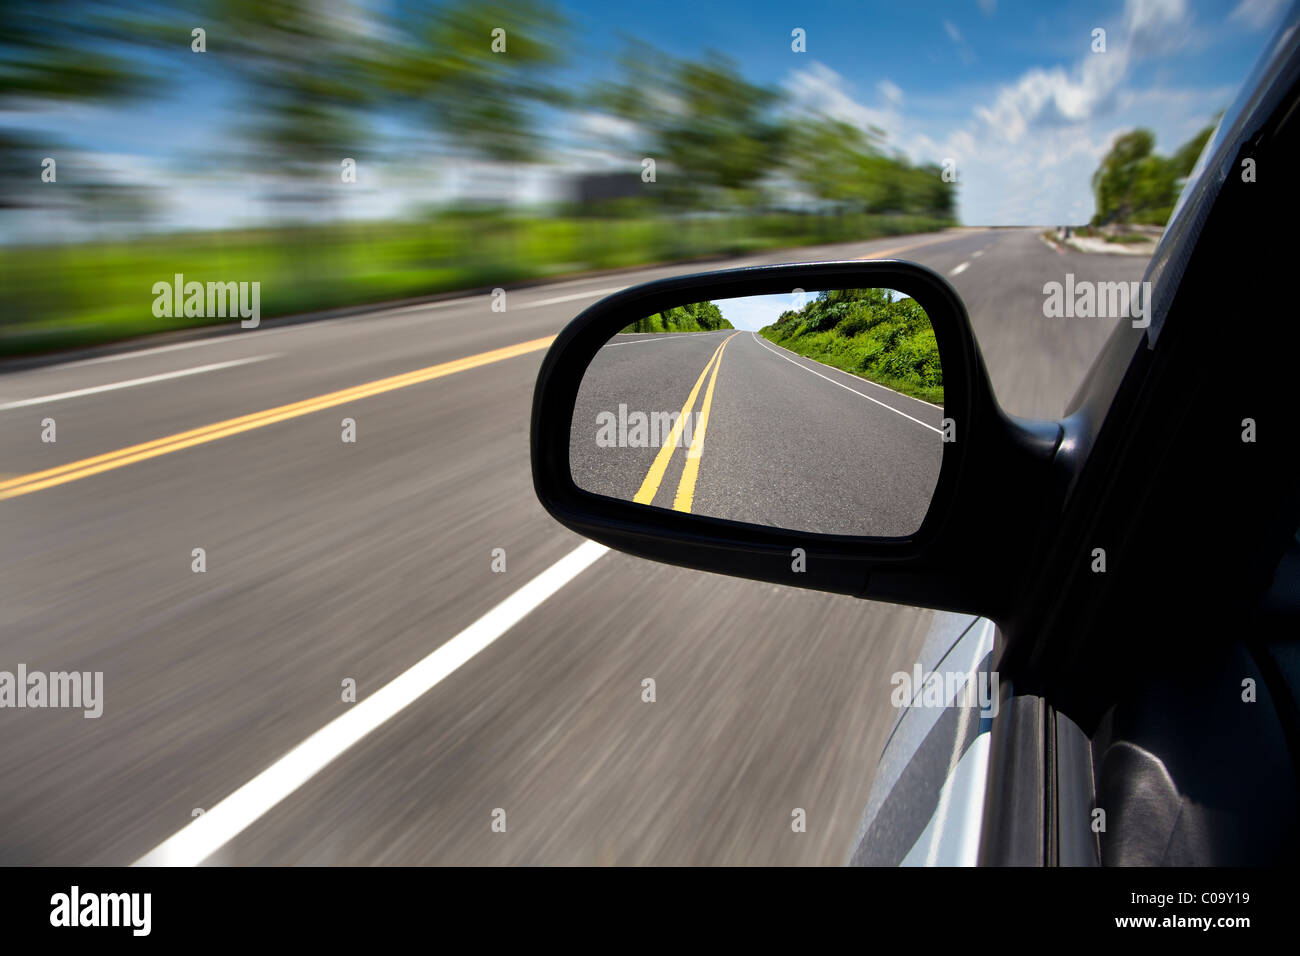 car driving through the empty road and focus on mirror - Stock Image